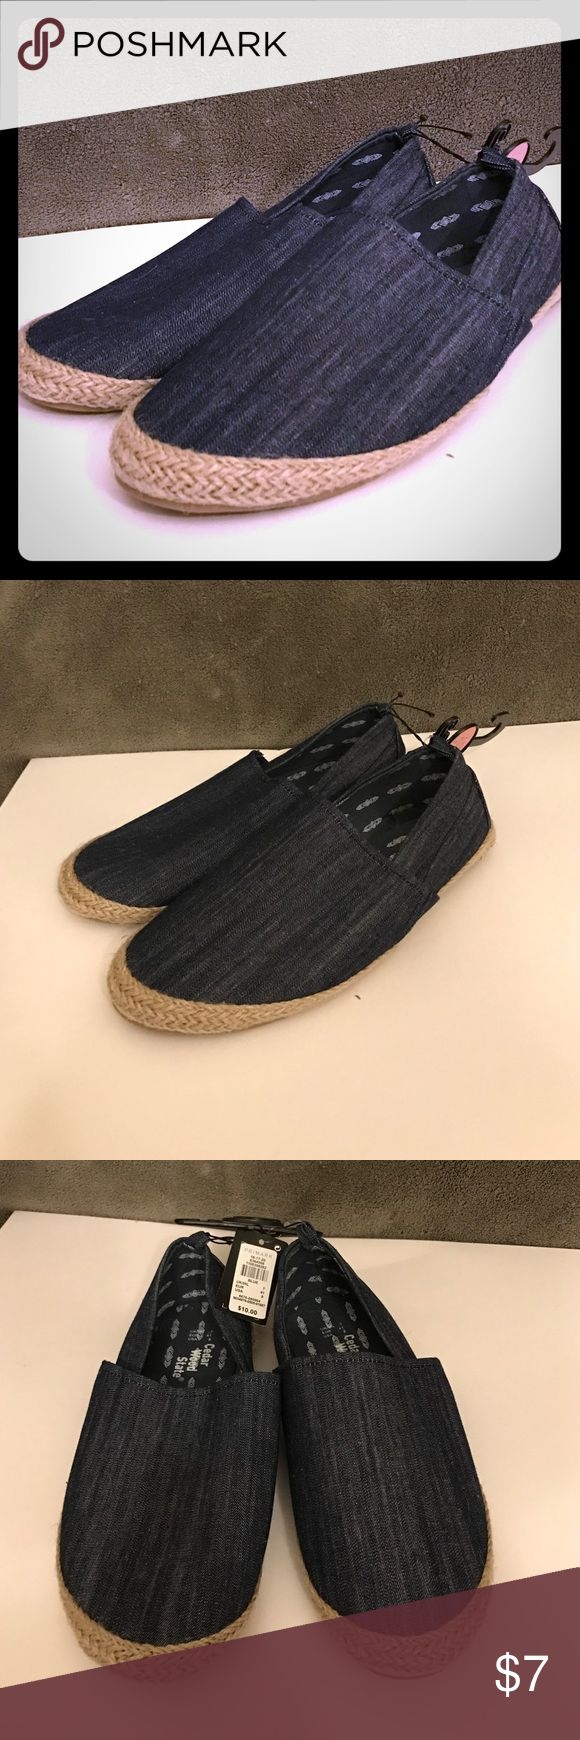 Cedar Wood State Espadrille Shoes Denim espadrilles shoes, slip on men's in size 8. Cedar Wood State Shoes Loafers & Slip-Ons